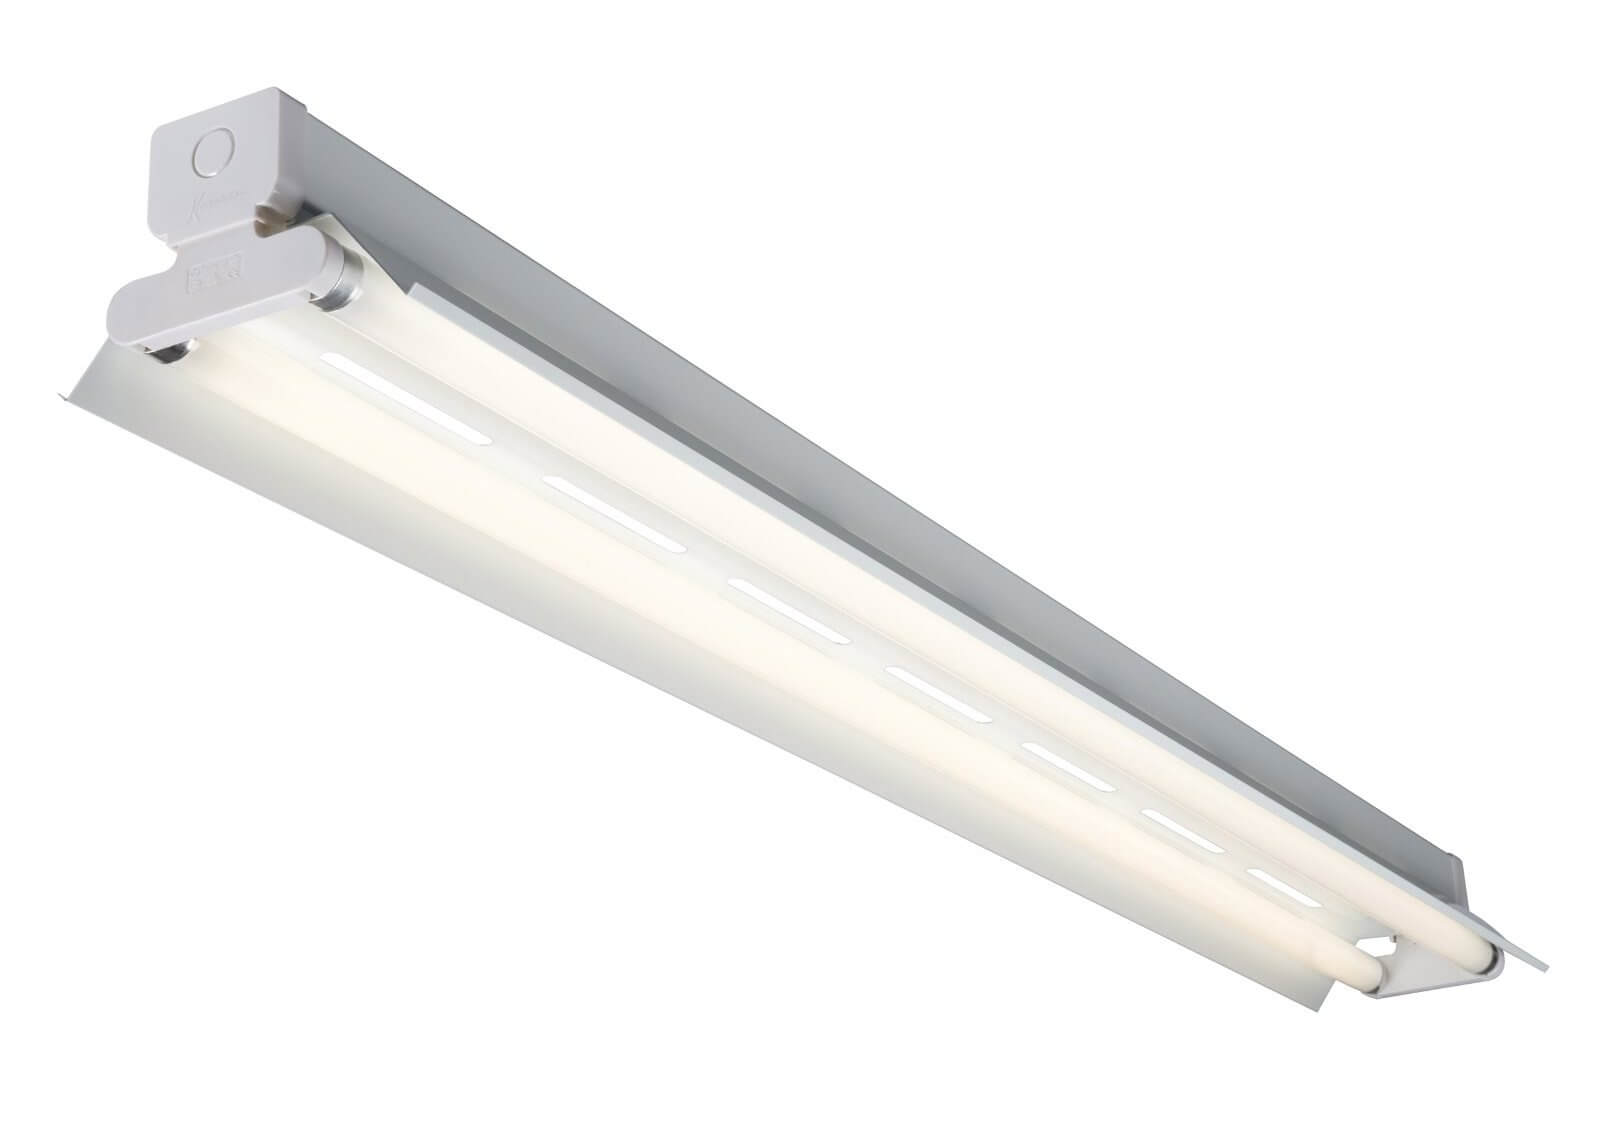 Fluorescent light fixture with tube lights